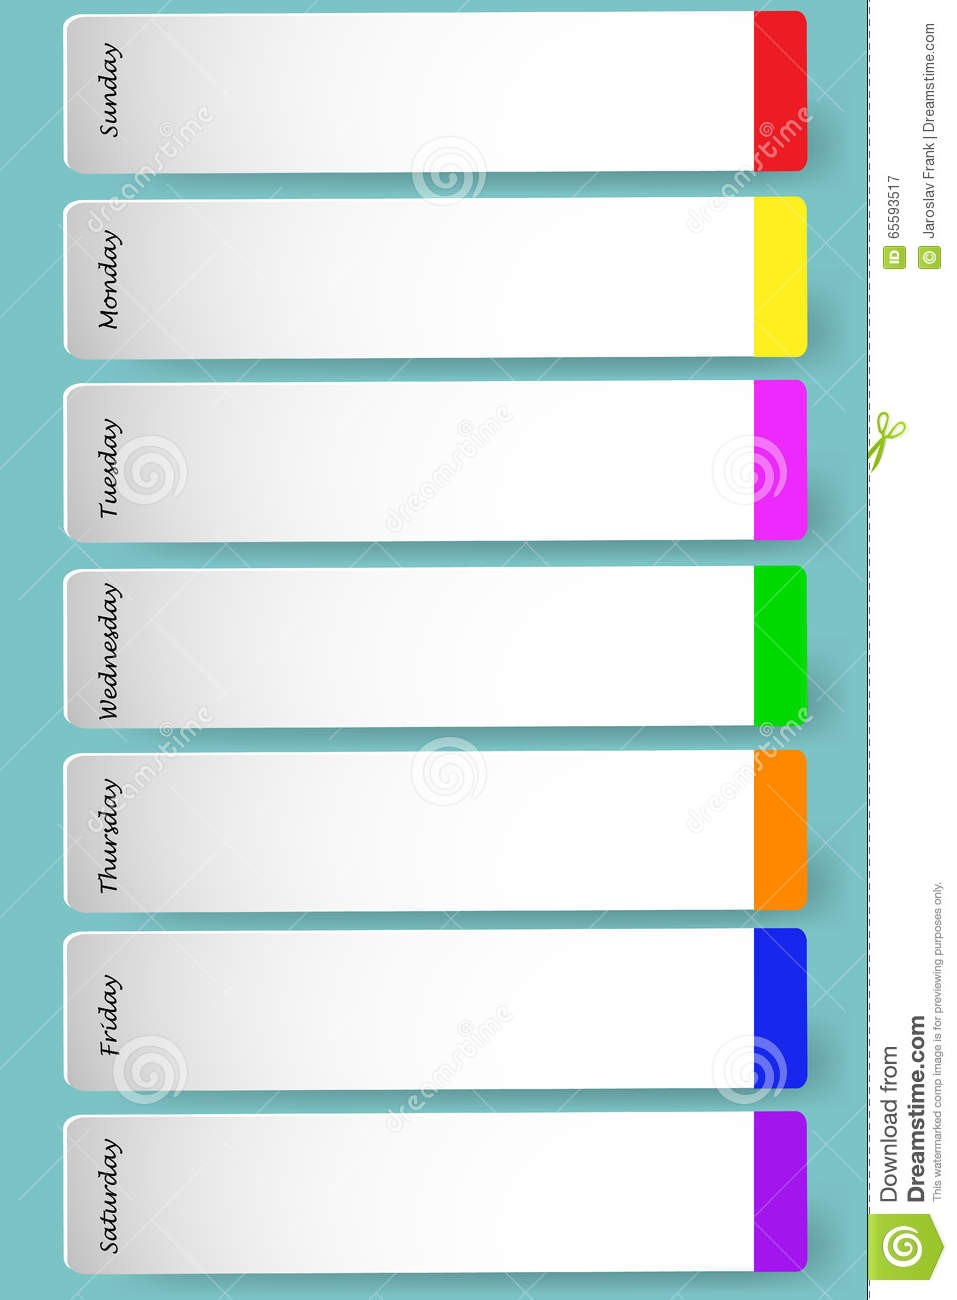 study schedule template  Weekly calendar for notes stock vector. Image of color ..